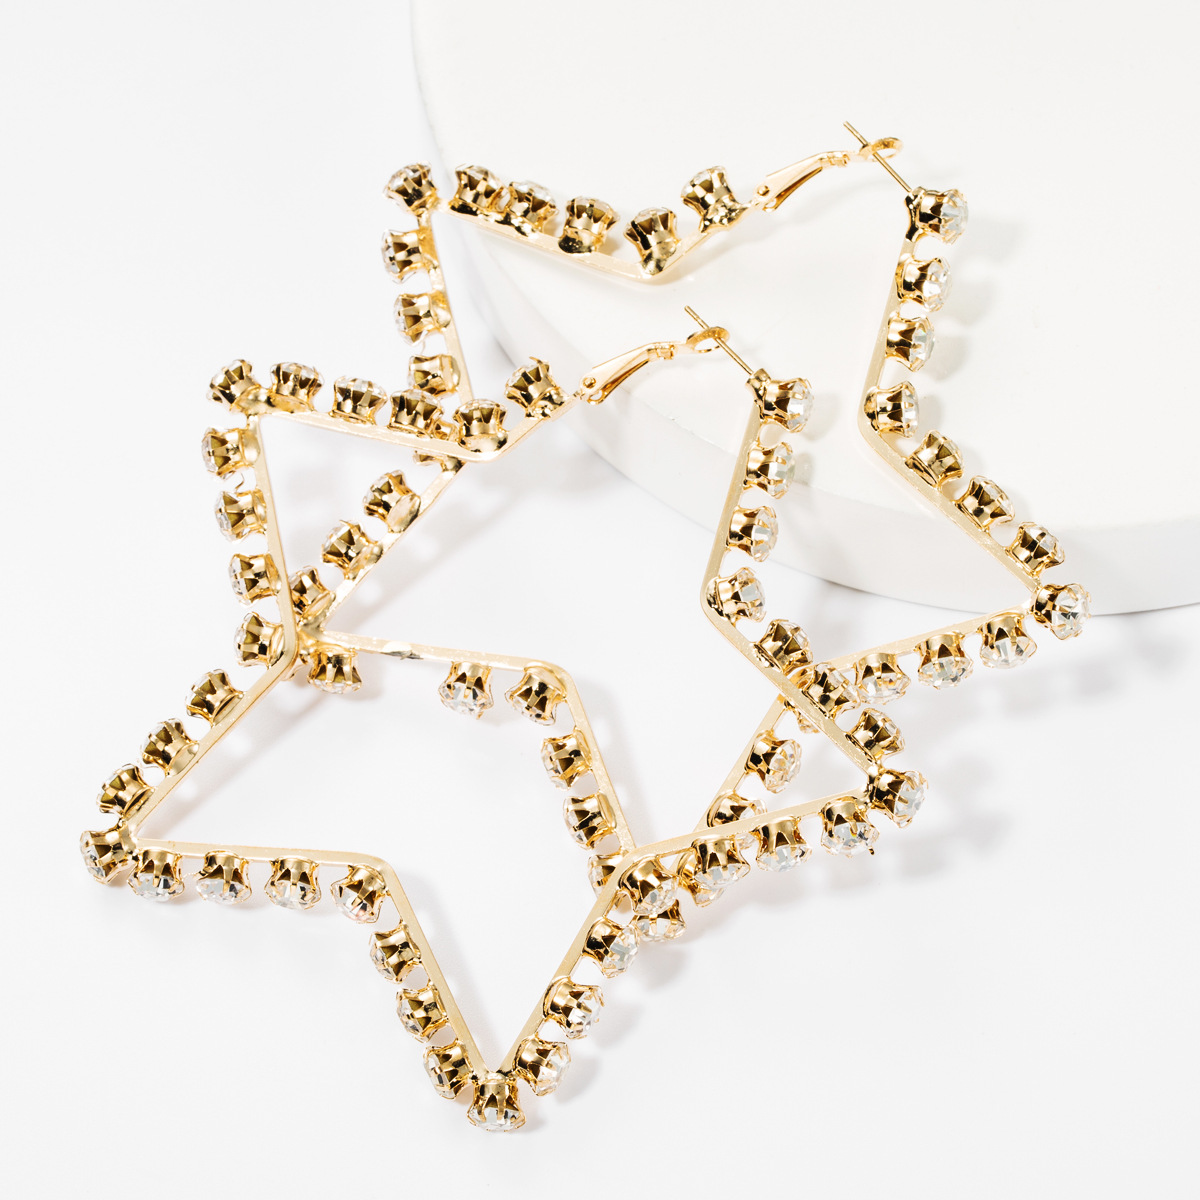 2020 New Fashion Statement Rhinestone Earrings Big Star Diamond Hoop Earrings For Women